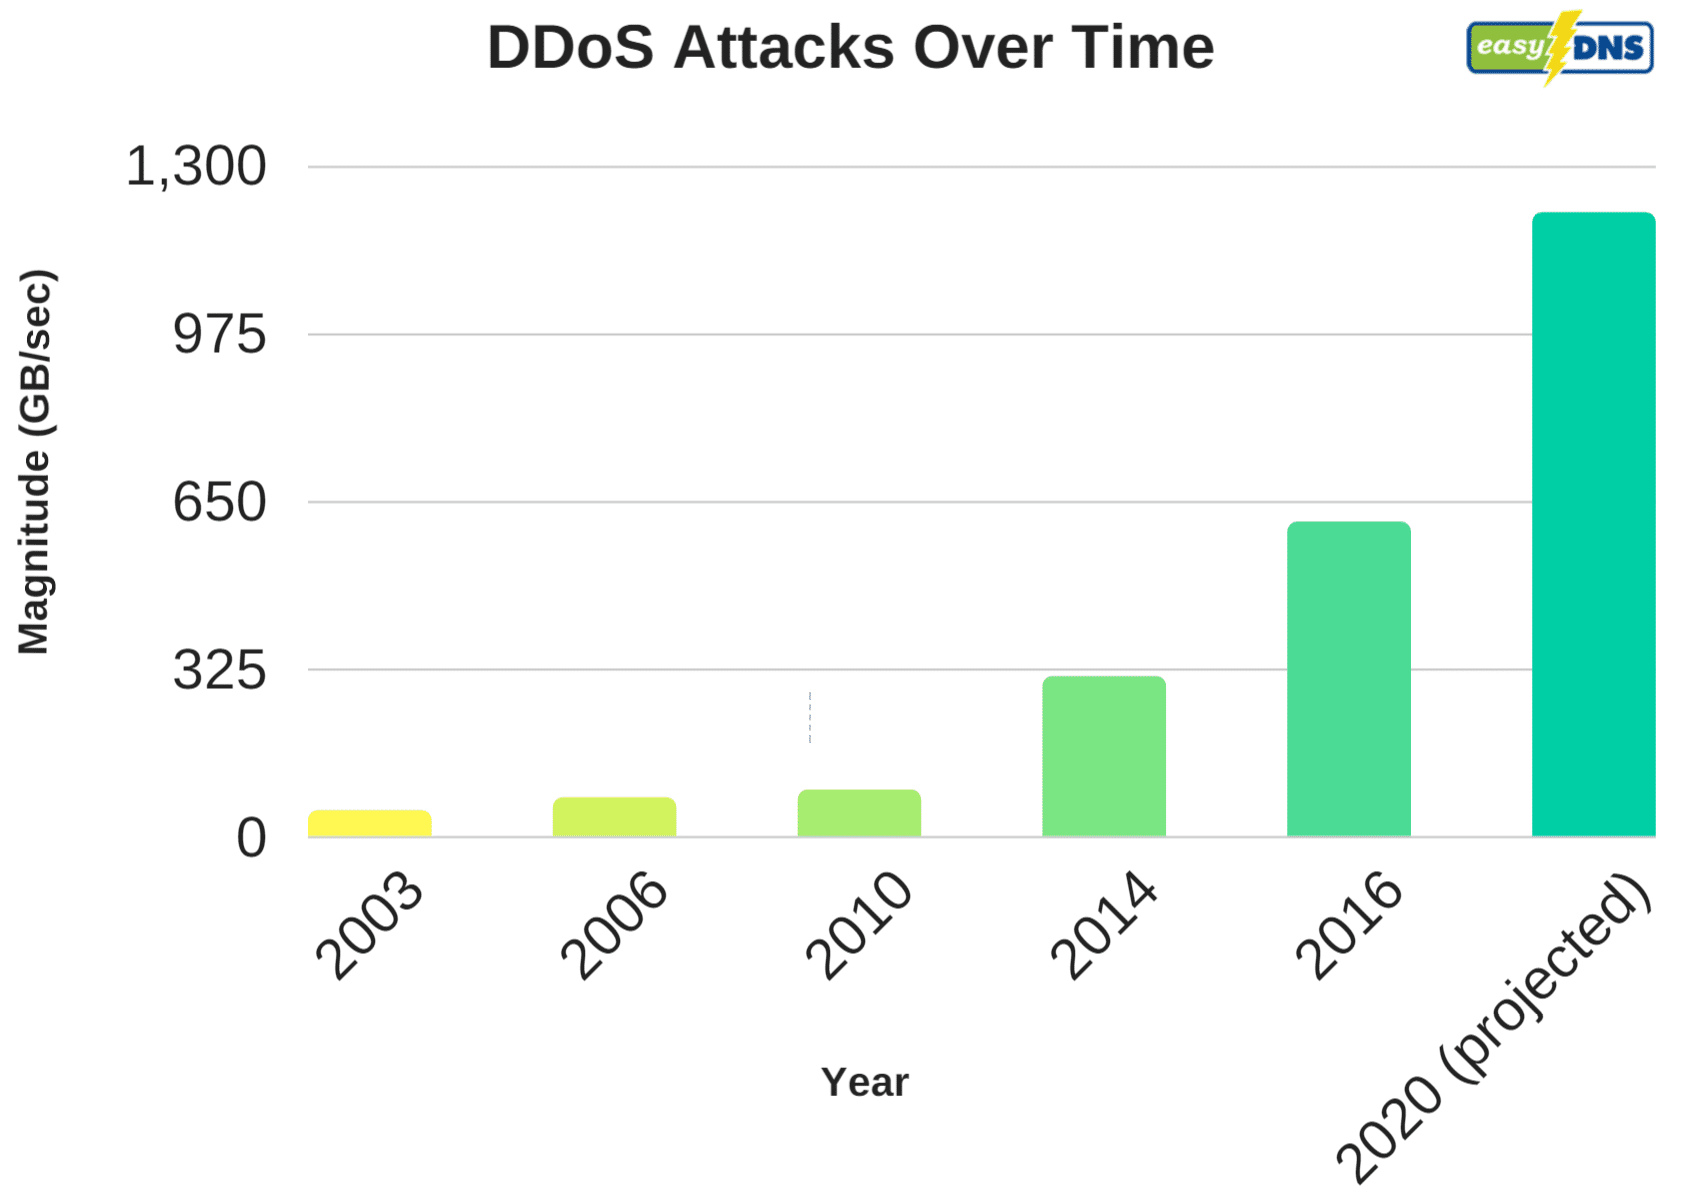 A chart showing how distributed denial of service (DDoS) attacks have grown over time.